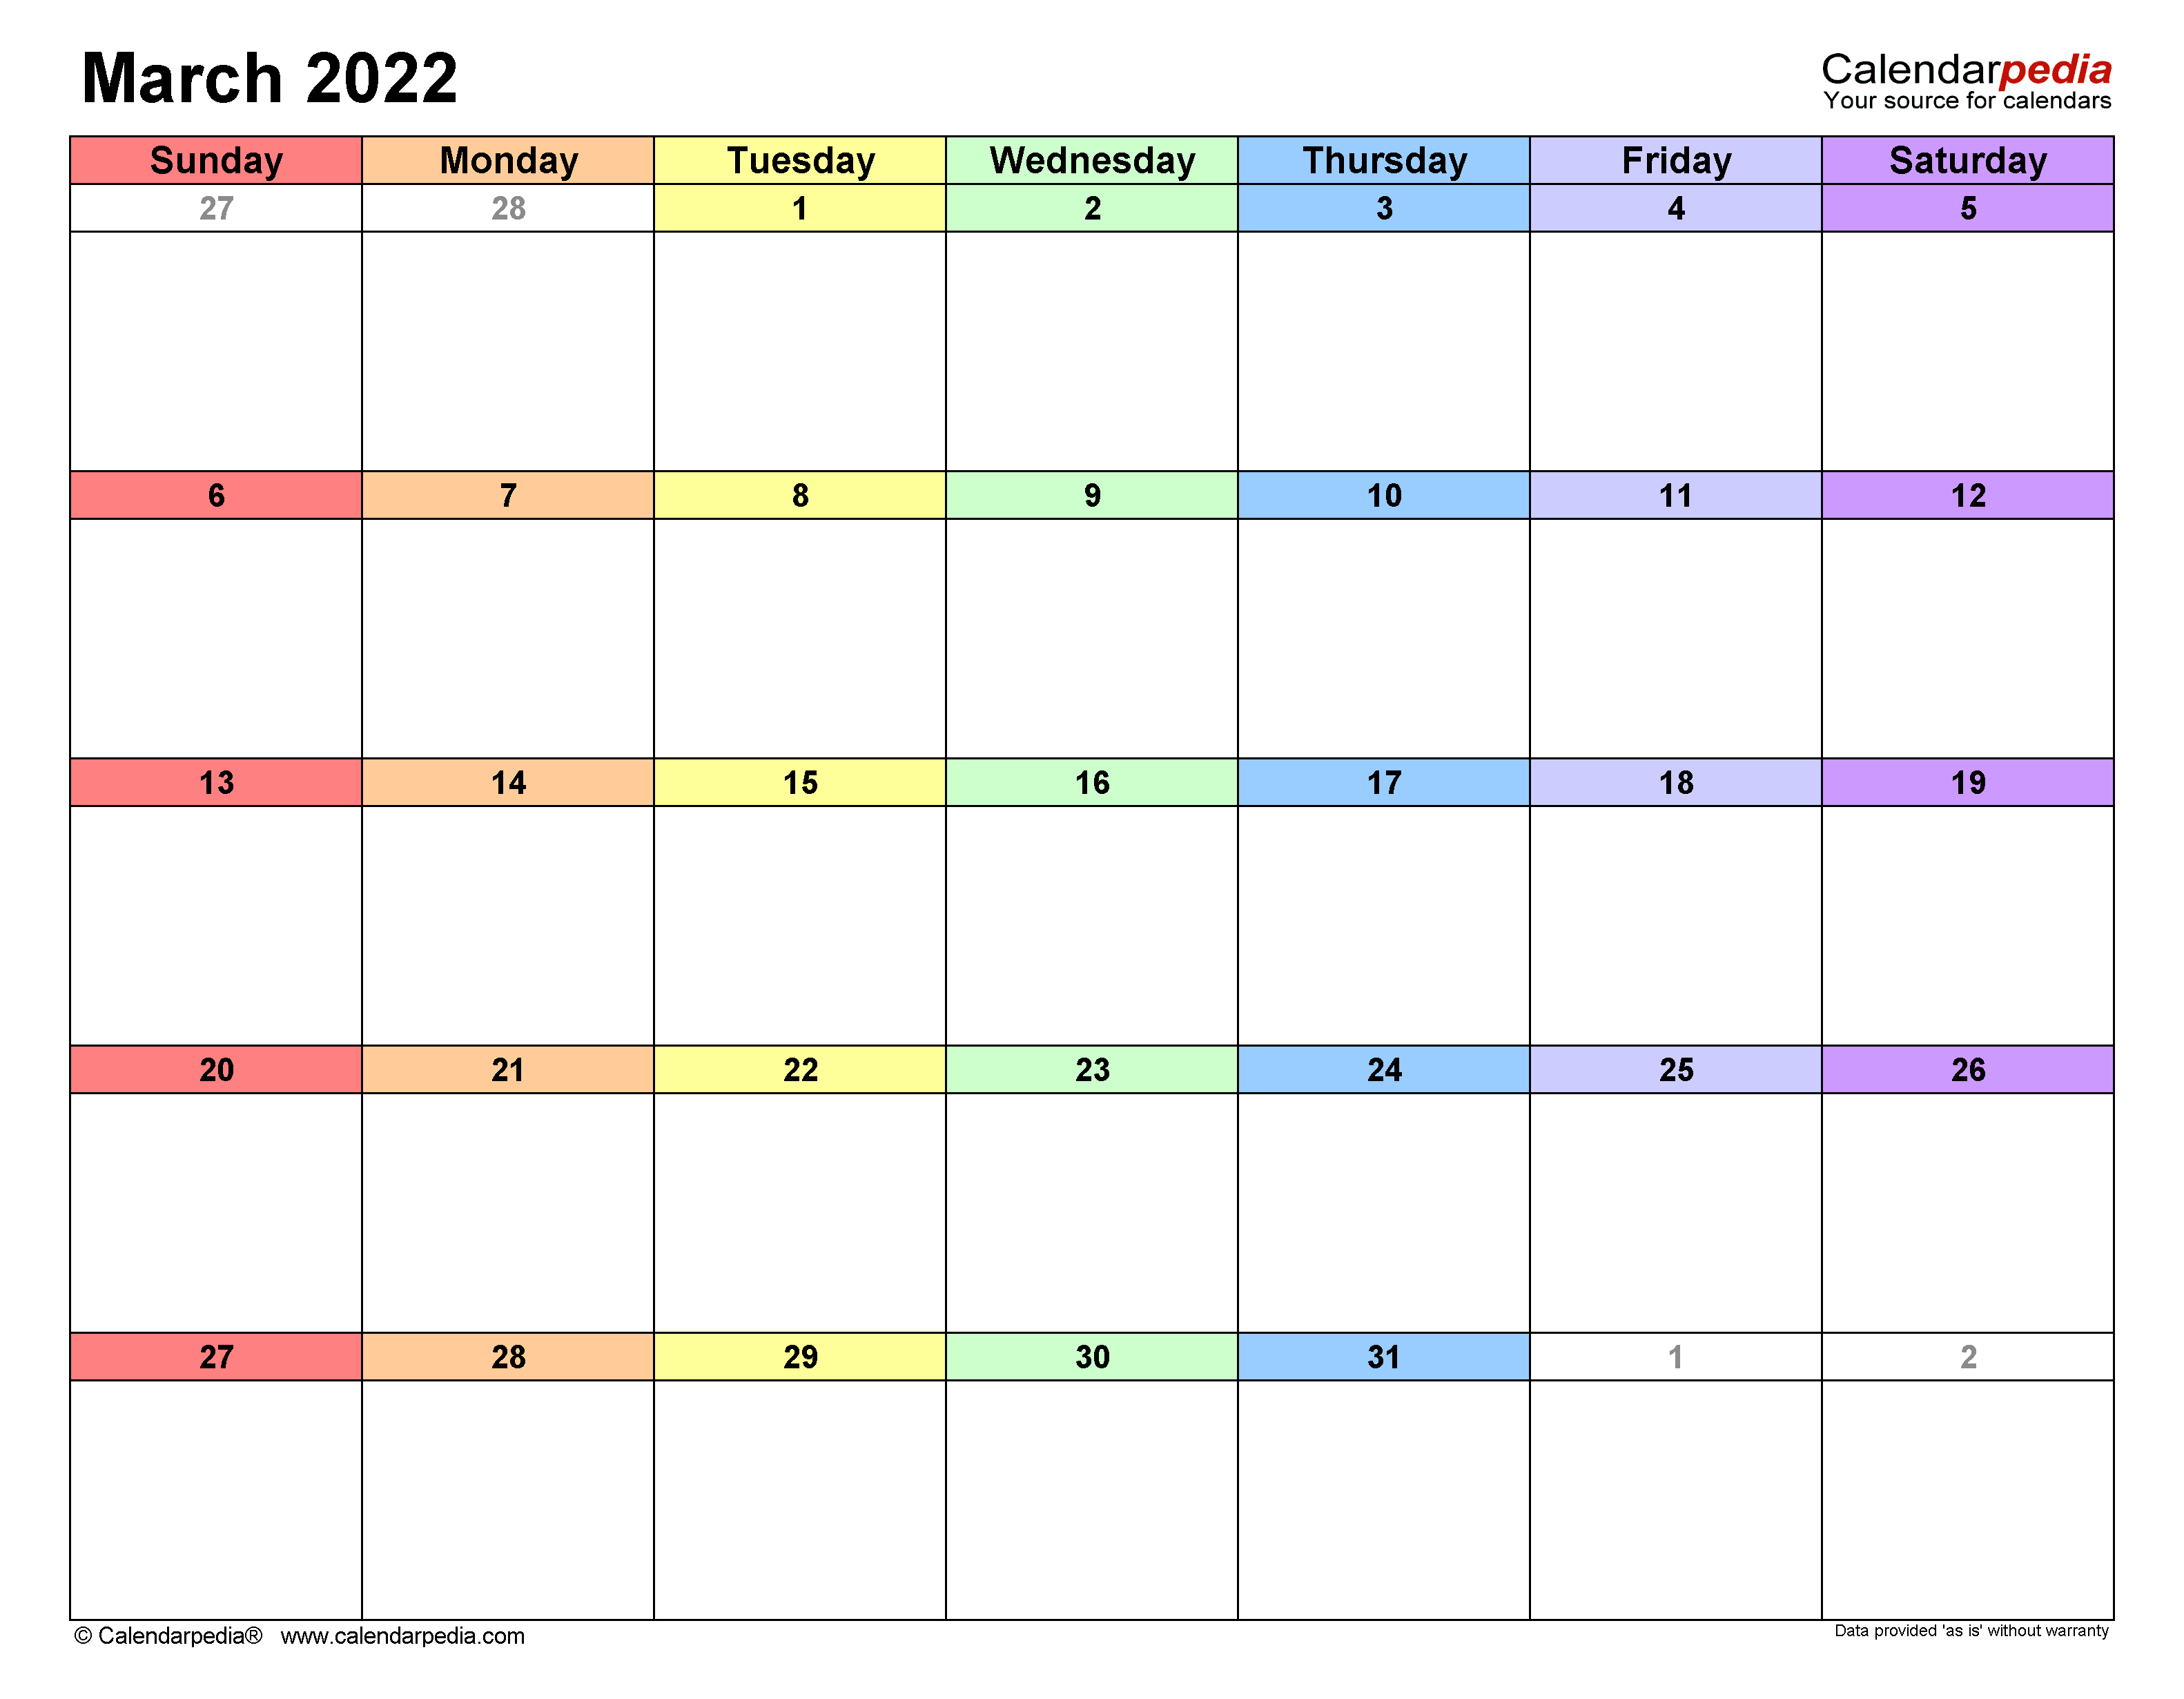 March 2022 Calendar | Templates for Word, Excel and PDF